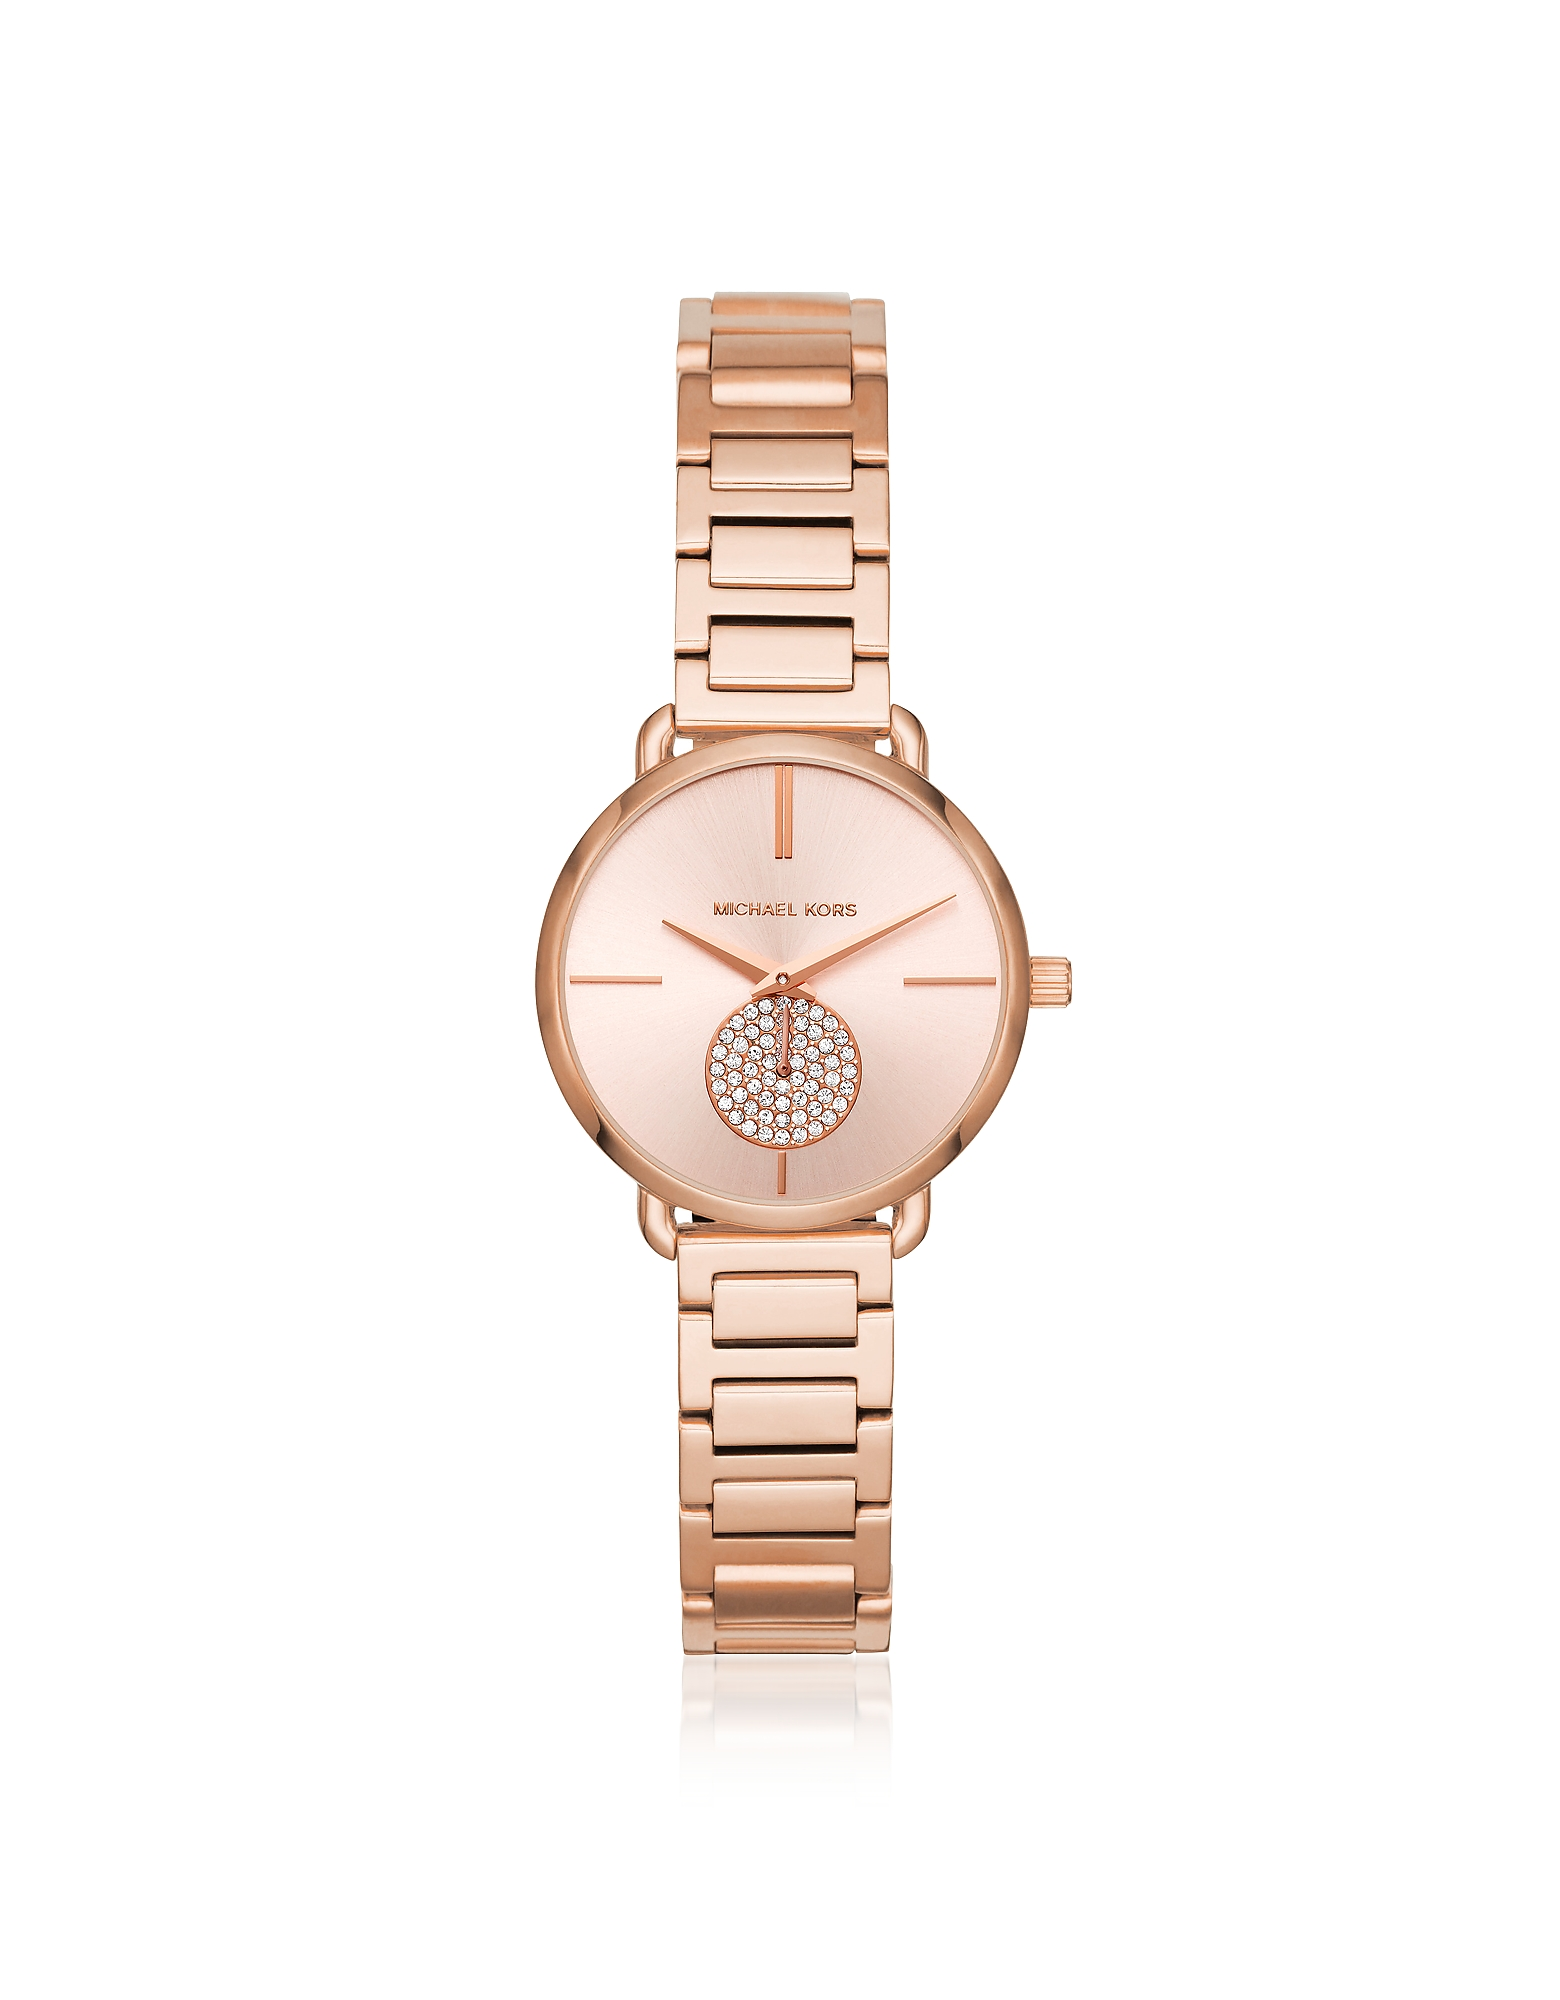 Michael Kors Women's Watches, Petite Portia Rose Gold Tone Watch